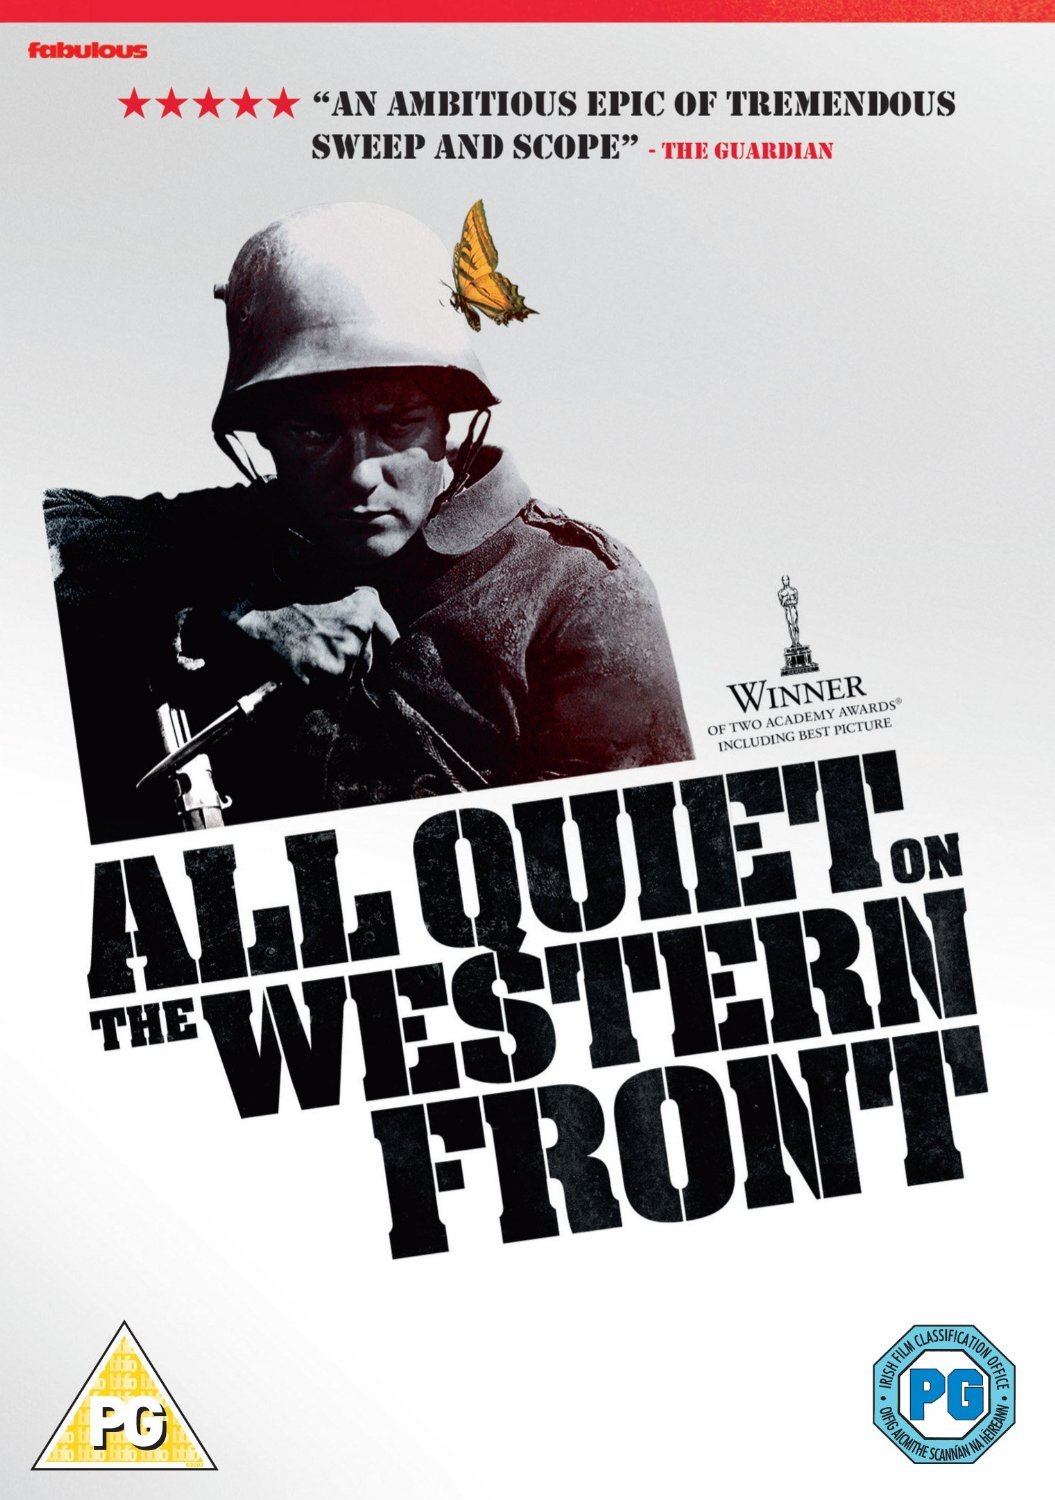 a comparison of all quiet on the western front by remarque and the movie based on it In all quiet on the western front, erich maria remarque creates paul bäumer to represent a whole generation of men who are known to history as the lost generation eight million men died in battle, twenty-one million were injured, and over six and a half million noncombatants were killed in what is called the great war.